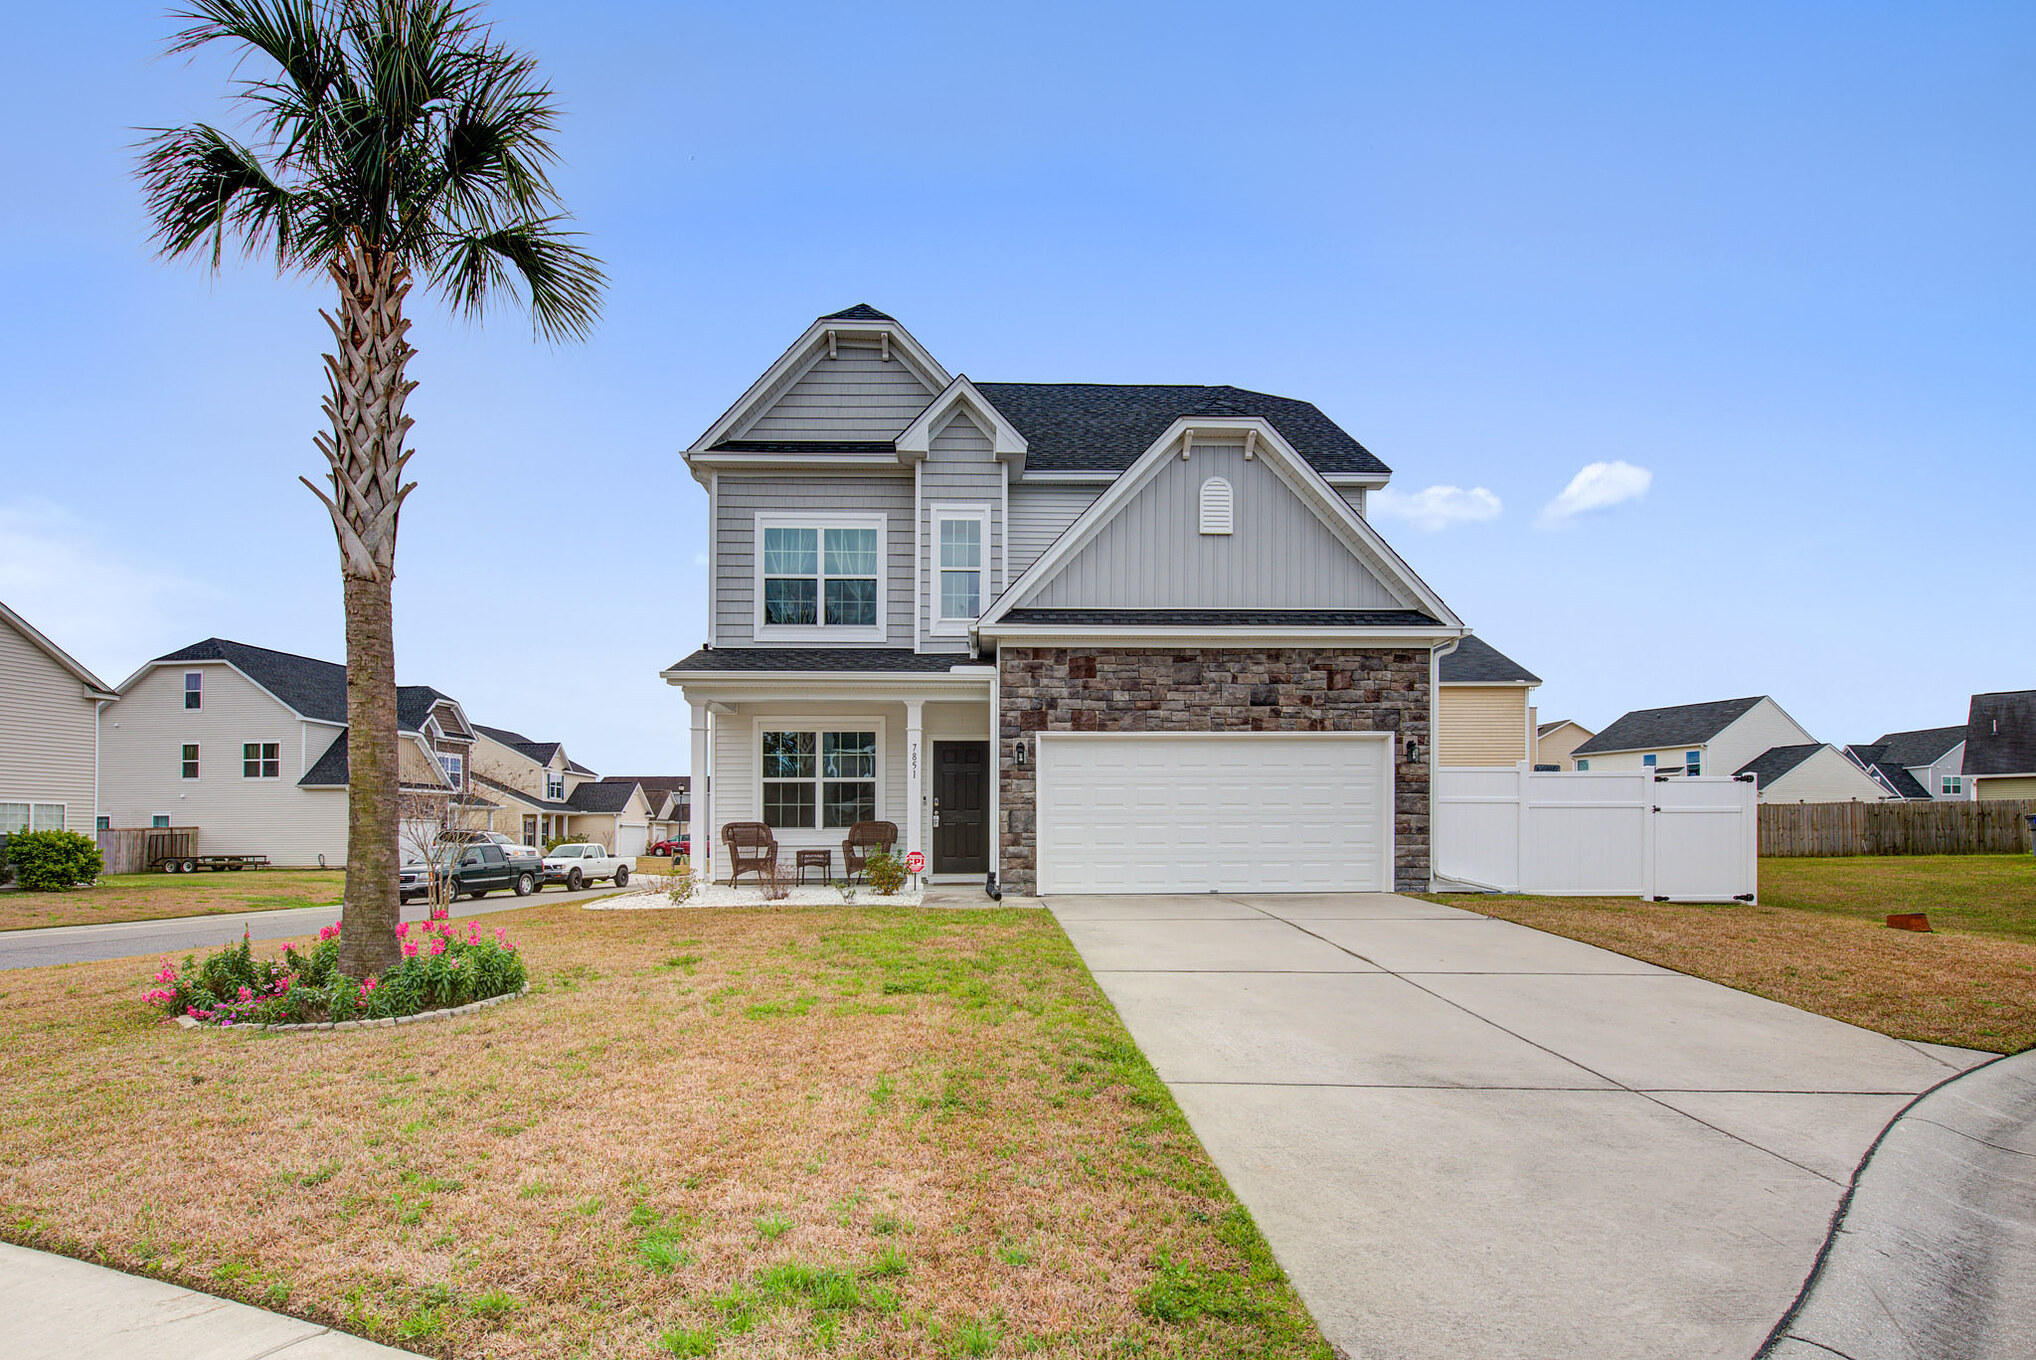 7851 Expedition Drive North Charleston, Sc 29420